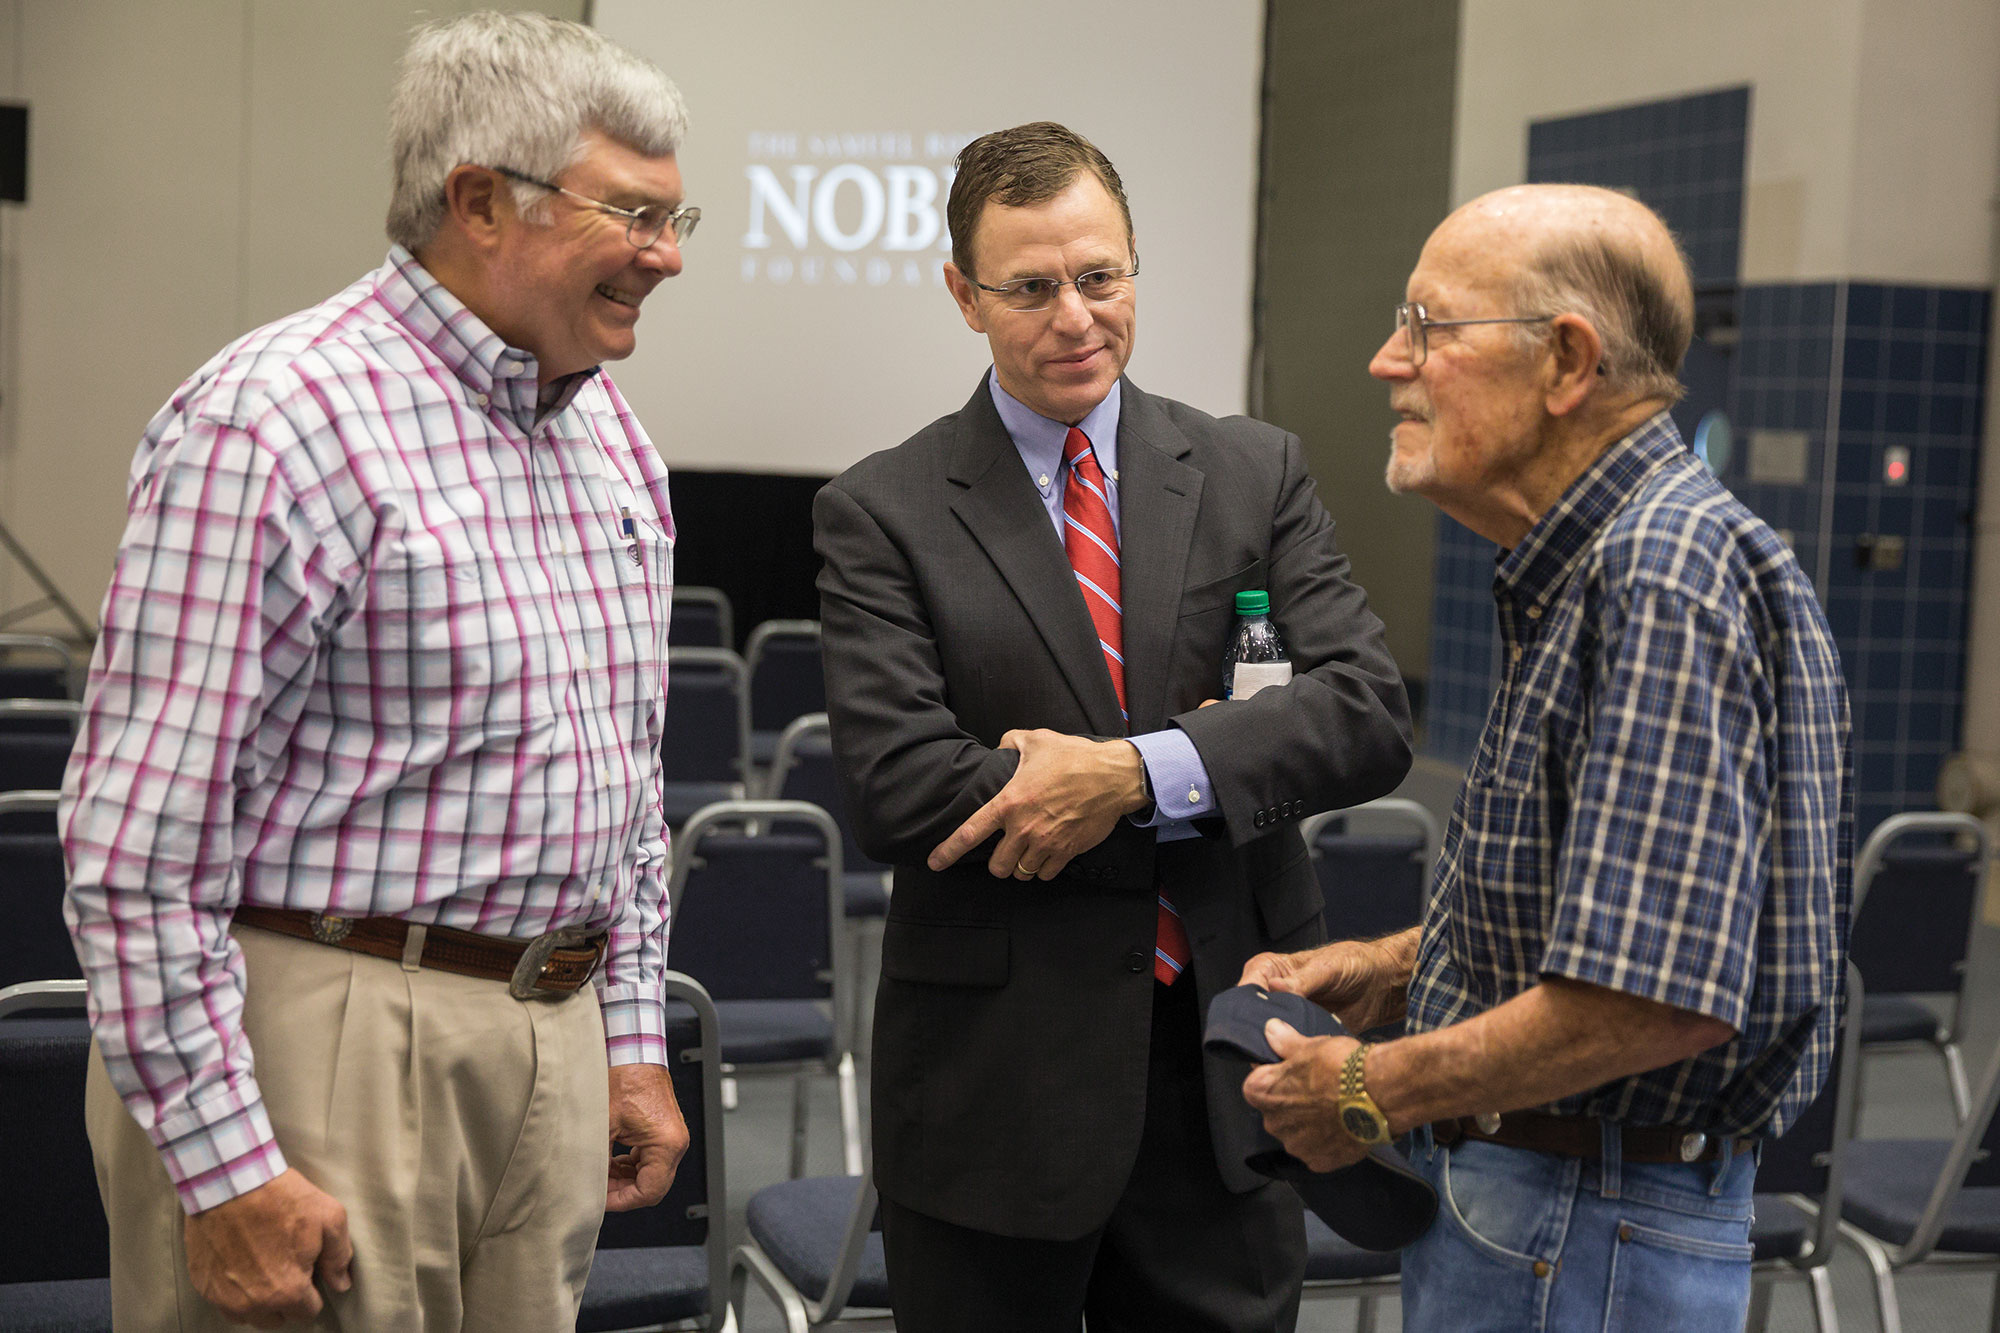 Steve Rhines (center) listens to Noble retirees Fred Schmedt (left) and Gary Simmons following the announcement that the Noble Foundation would be renamed as the Noble Research Institute.